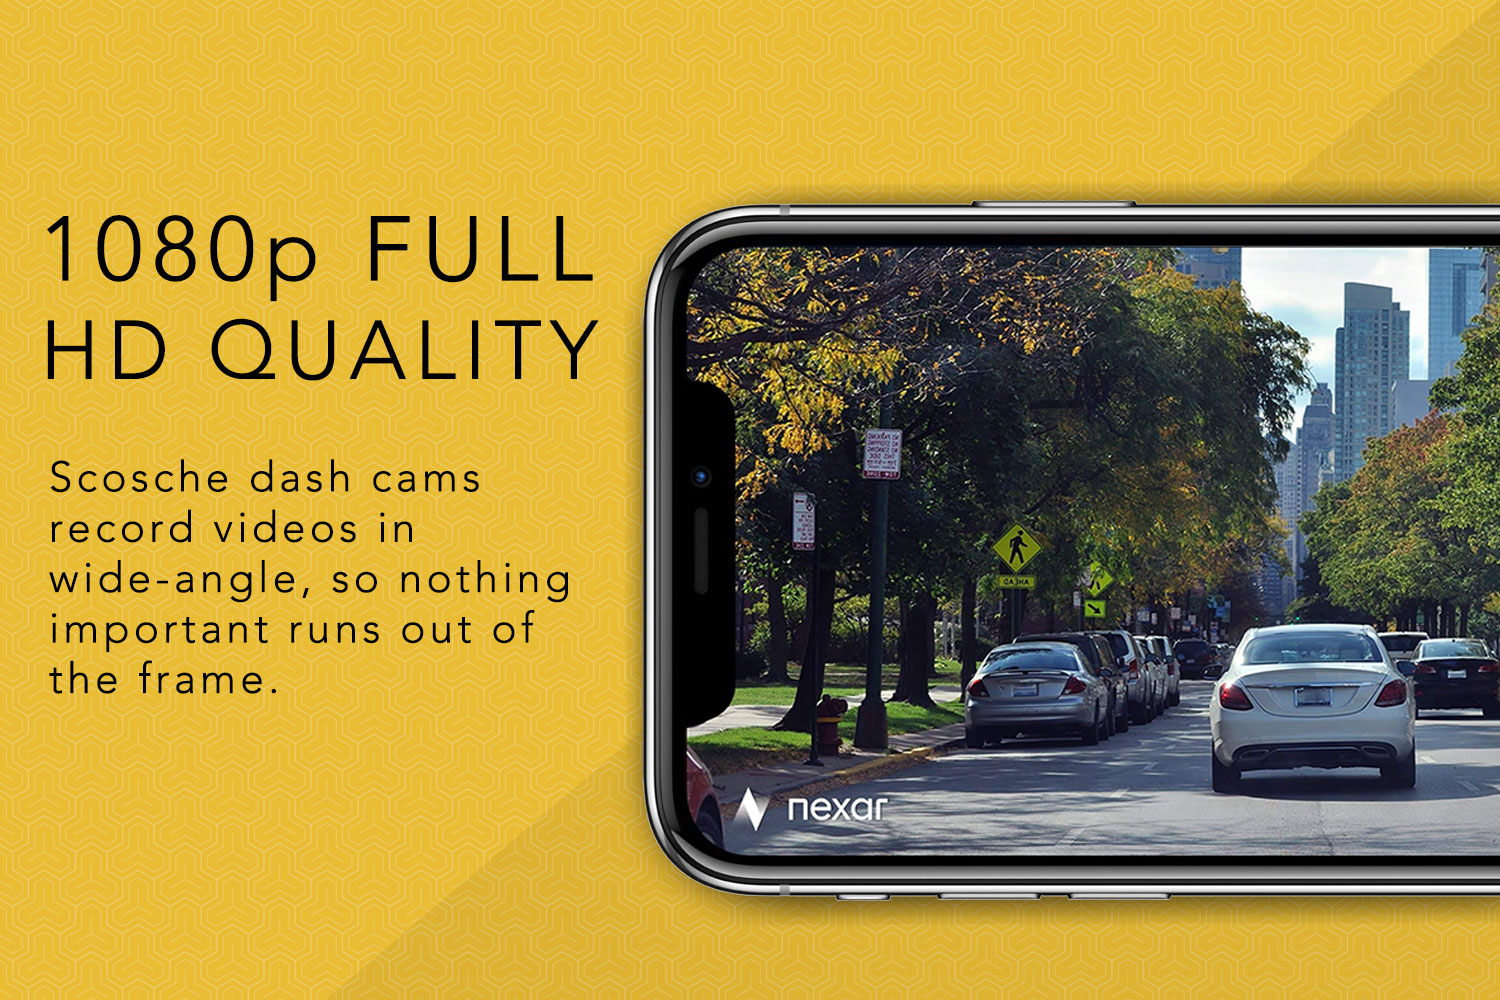 1080p Full HD Quality, Scosche dash cams record videos in wide-angle, so nothing important runs out of the frame.